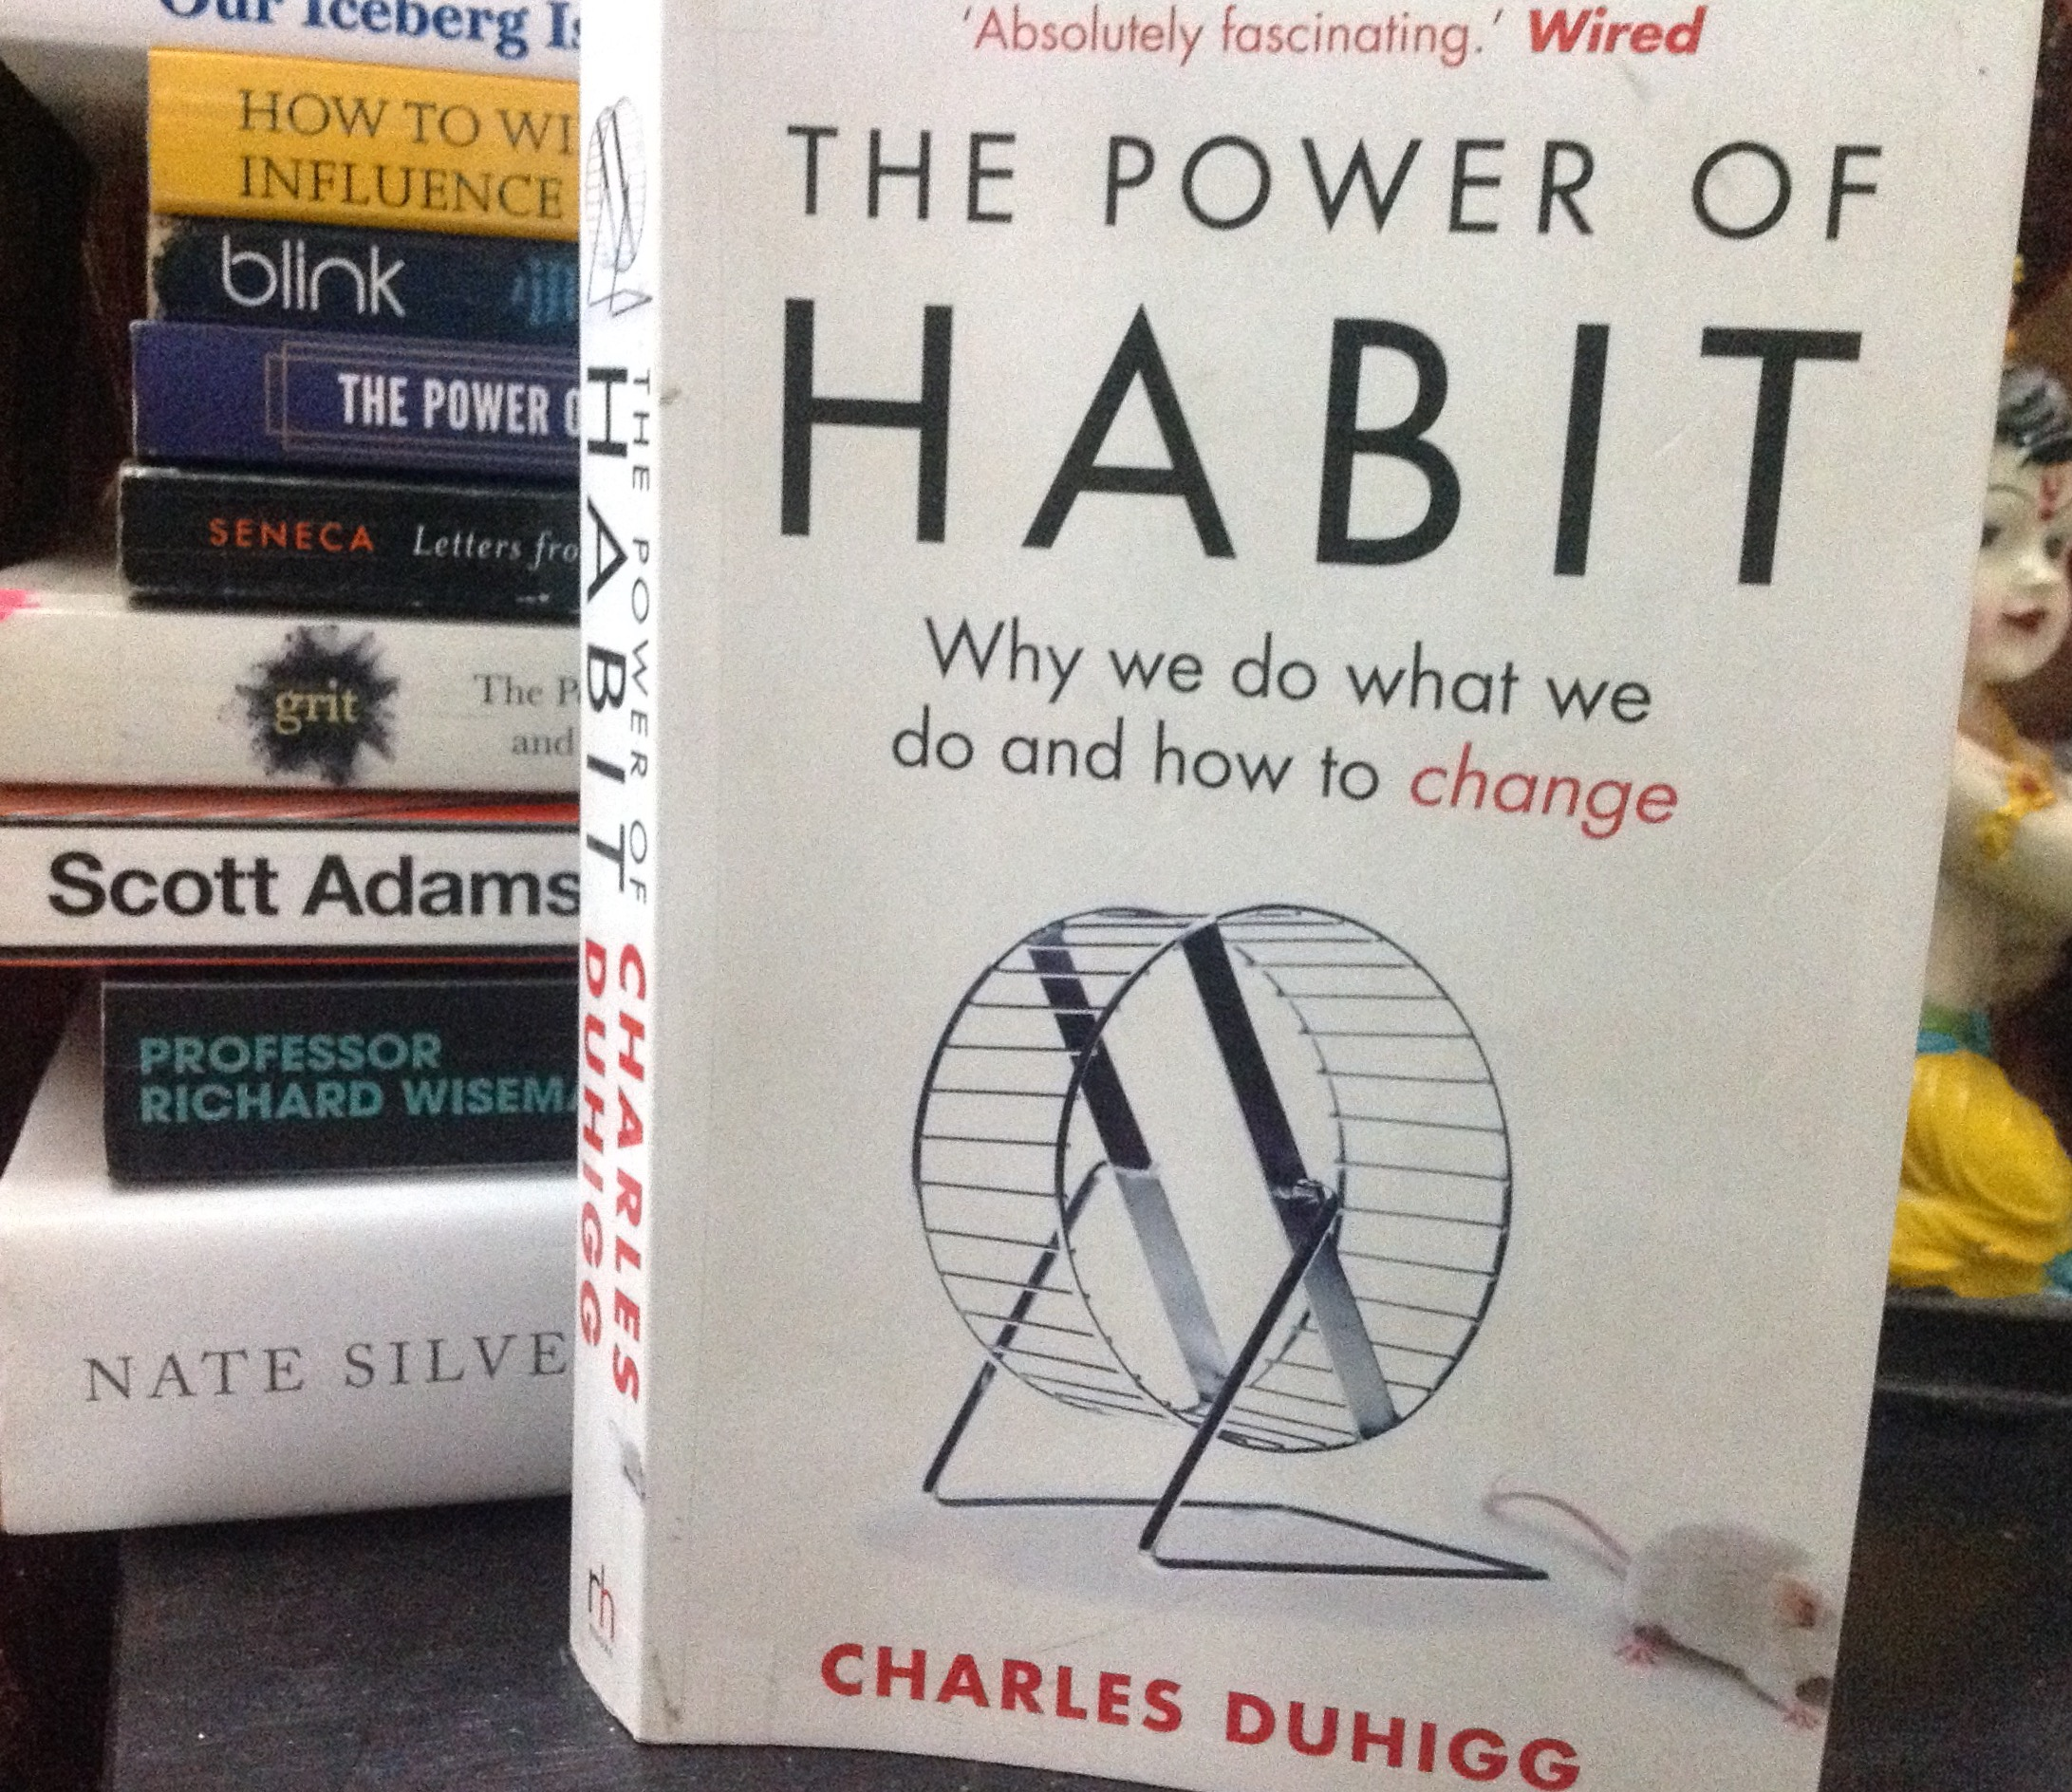 'The Power of Habit' by Charles Duhigg - Part I